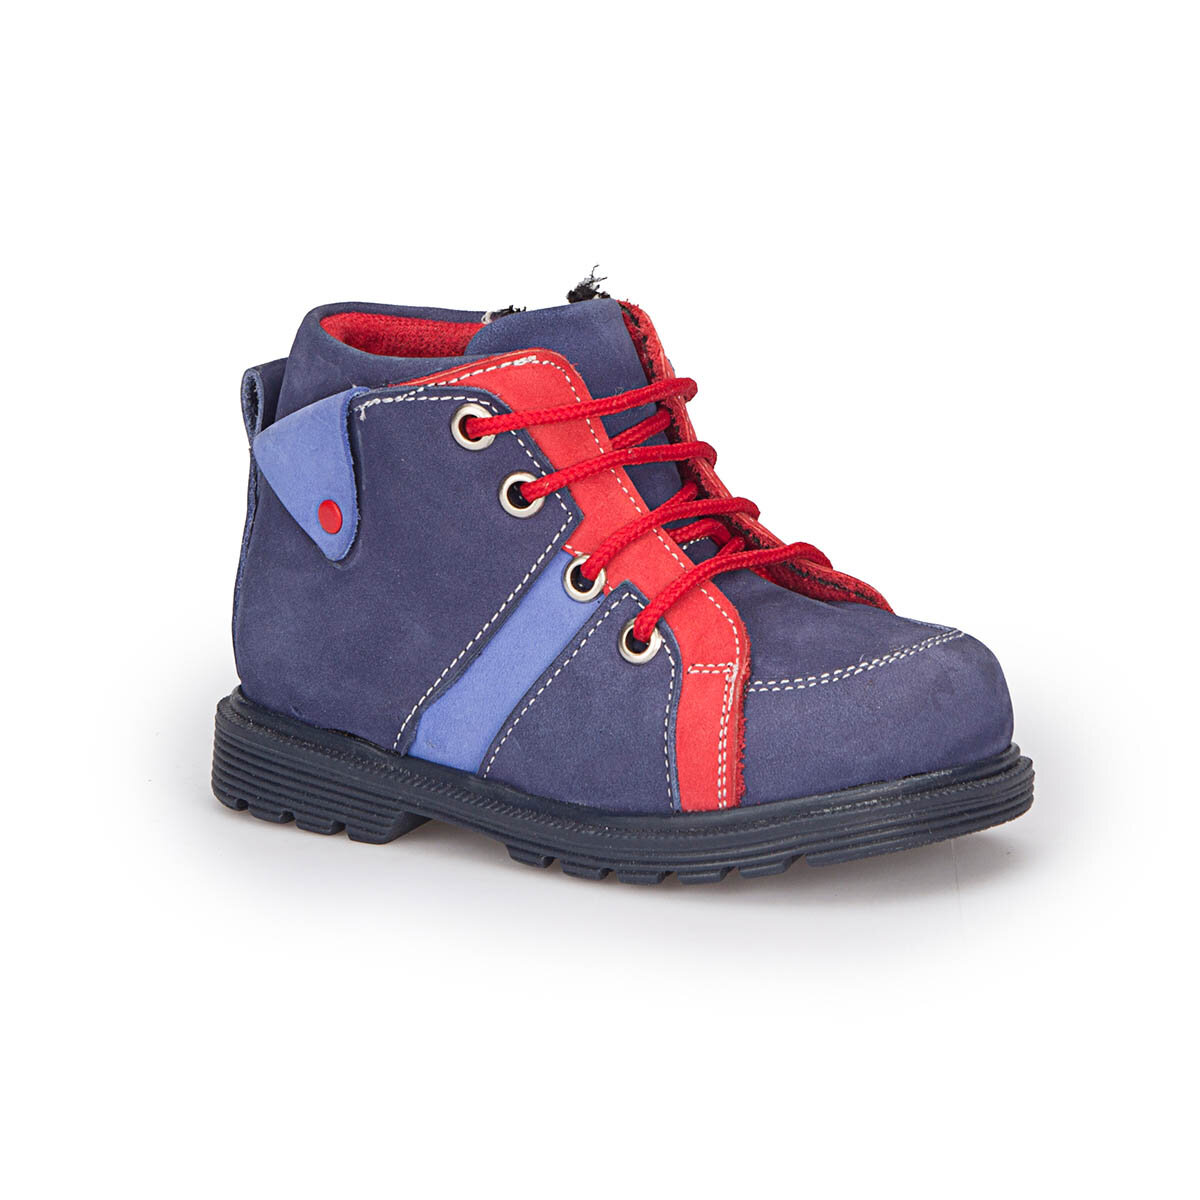 FLO 72.509579.B Navy Blue Male Child Boots Polaris